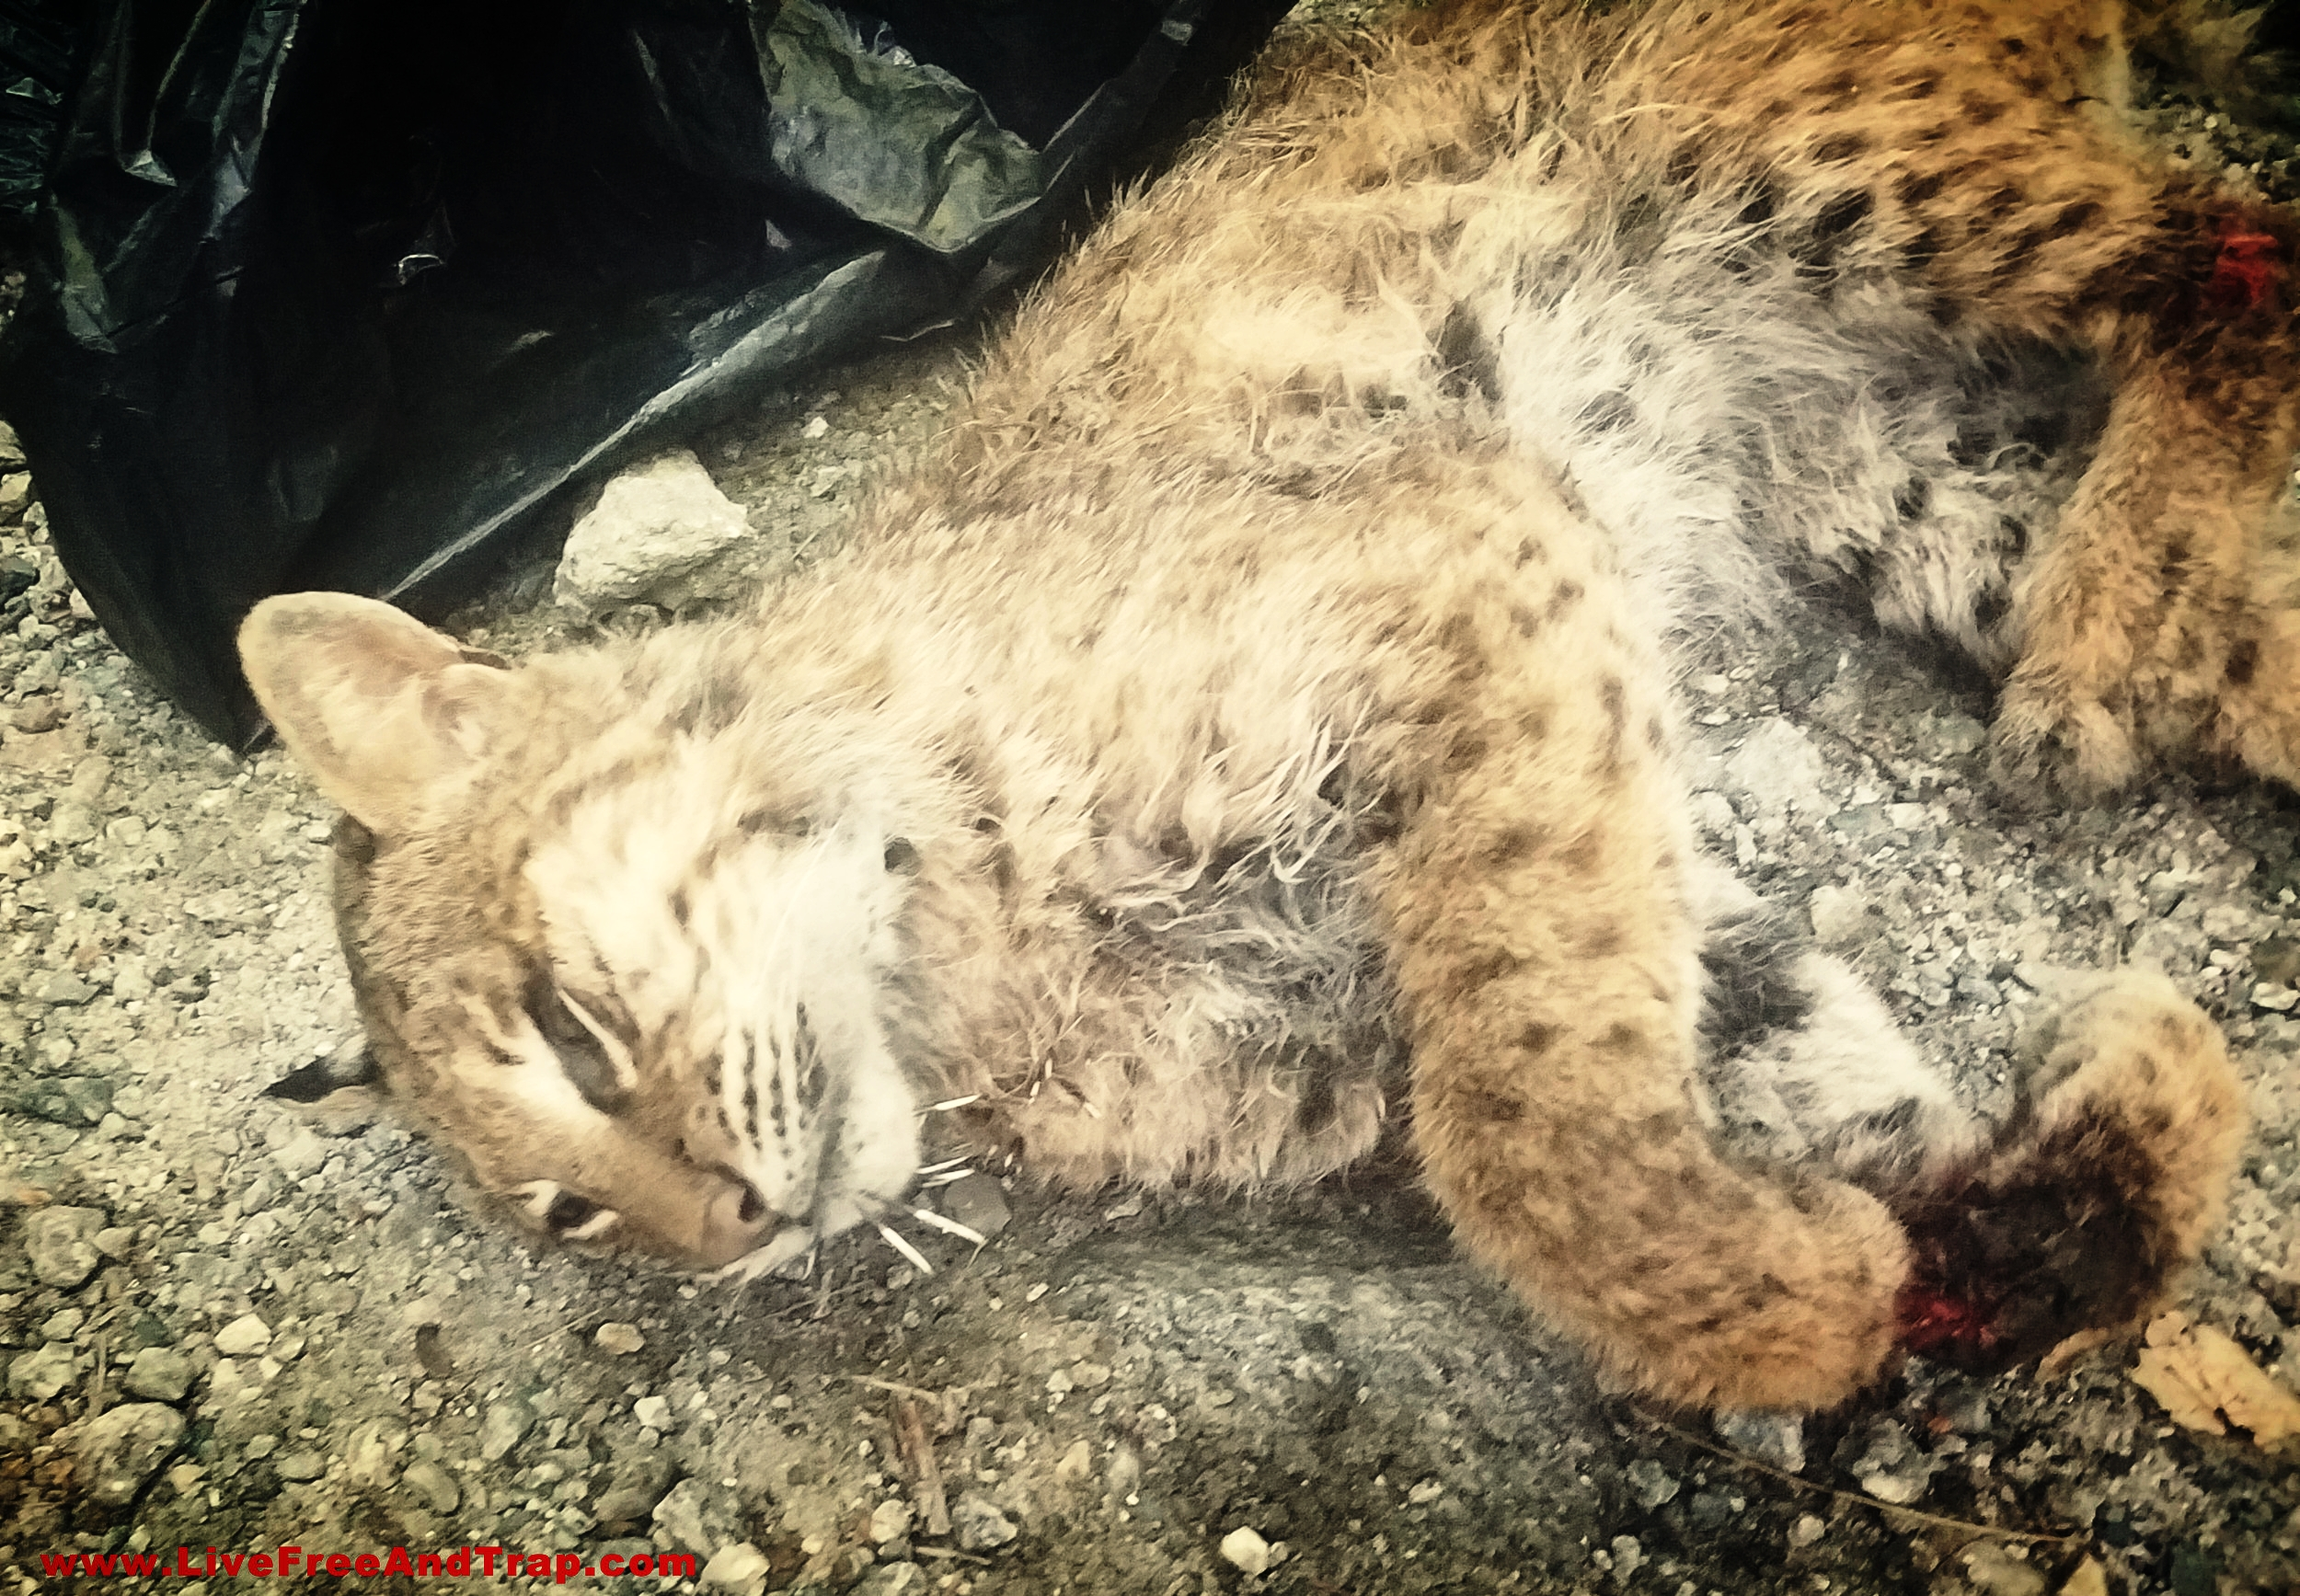 The bobcat that attacked Mrs. Dabrowski prior to being removed by NH Fish & Game. Sadly, this has become the norm for NH's surplus bobcats - dropped into a garbage bag and thrown away. Bobcats like this one are discarded on a weekly basis as the population swells un-monitored. (Photo courtesy Gene Dabrowski)